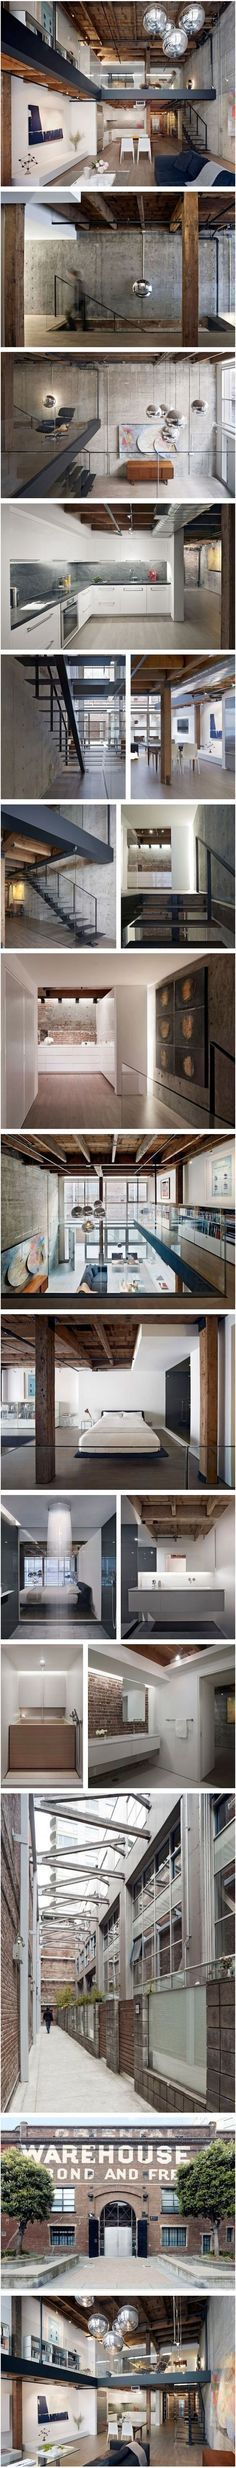 Take a look at this stunning industrial loft and get inspired | www.vintageindustrialstyle.com #industrialloft #vintageindustrialstyle #industrialdesign